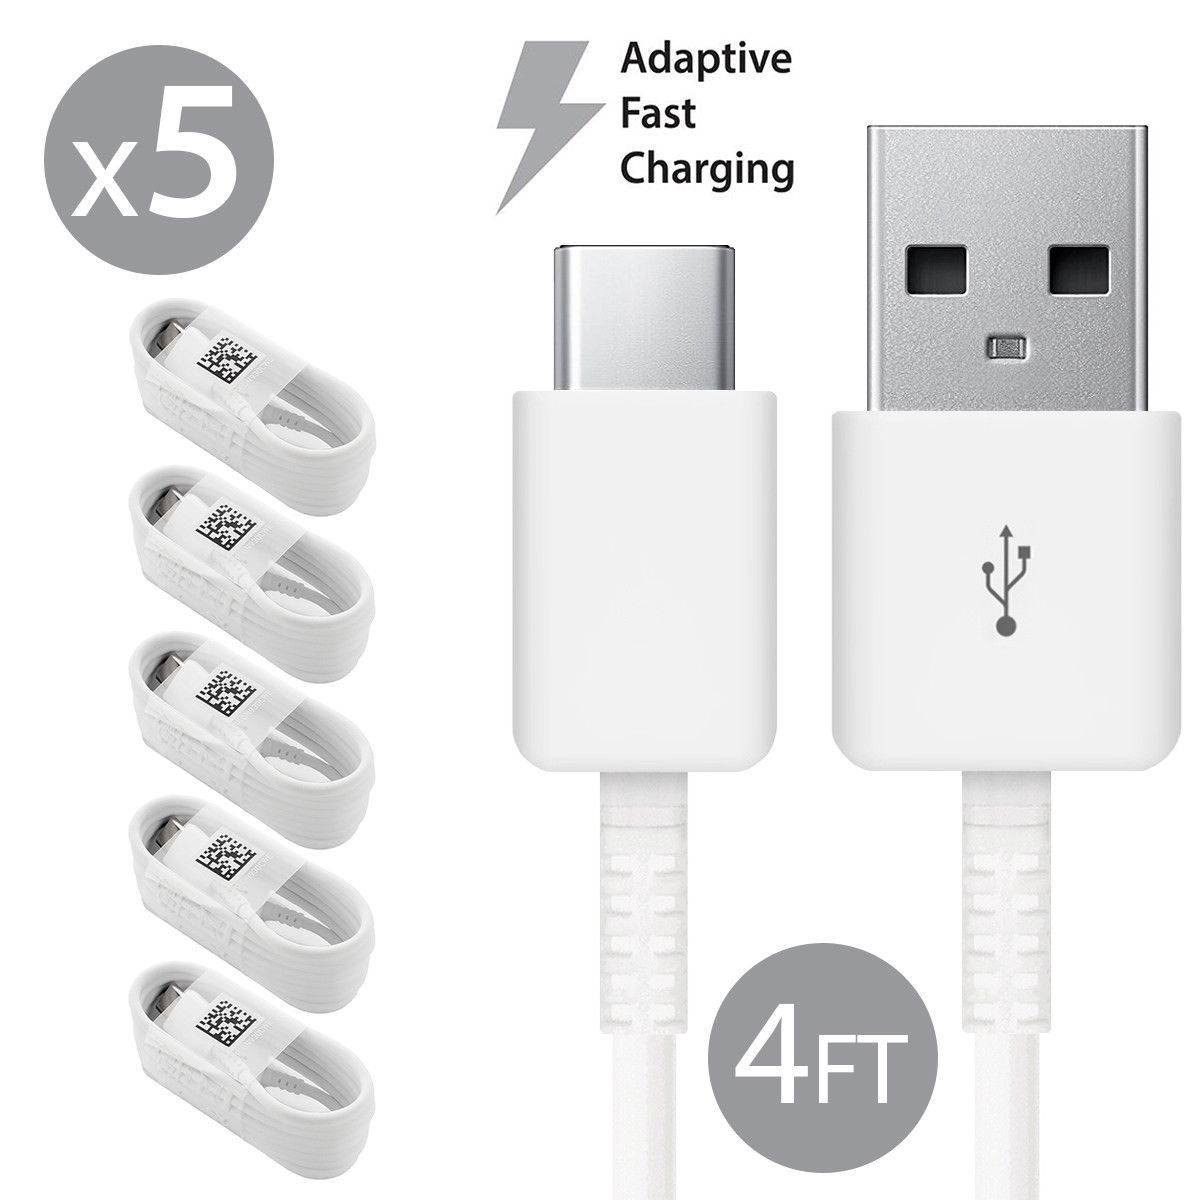 5 Pack Afflux USB Type C USB-C Fast Charging Cable USB-C 3.1 Data Sync Charger Cord For Samsung Galaxy S8 S8+ S9 S9+ Galaxy Note 8 9 Nexus 5X 6P OnePlus 3t 5 5t LG G5 G6 V20 V30 Google Pixel 2 2XL 4FT